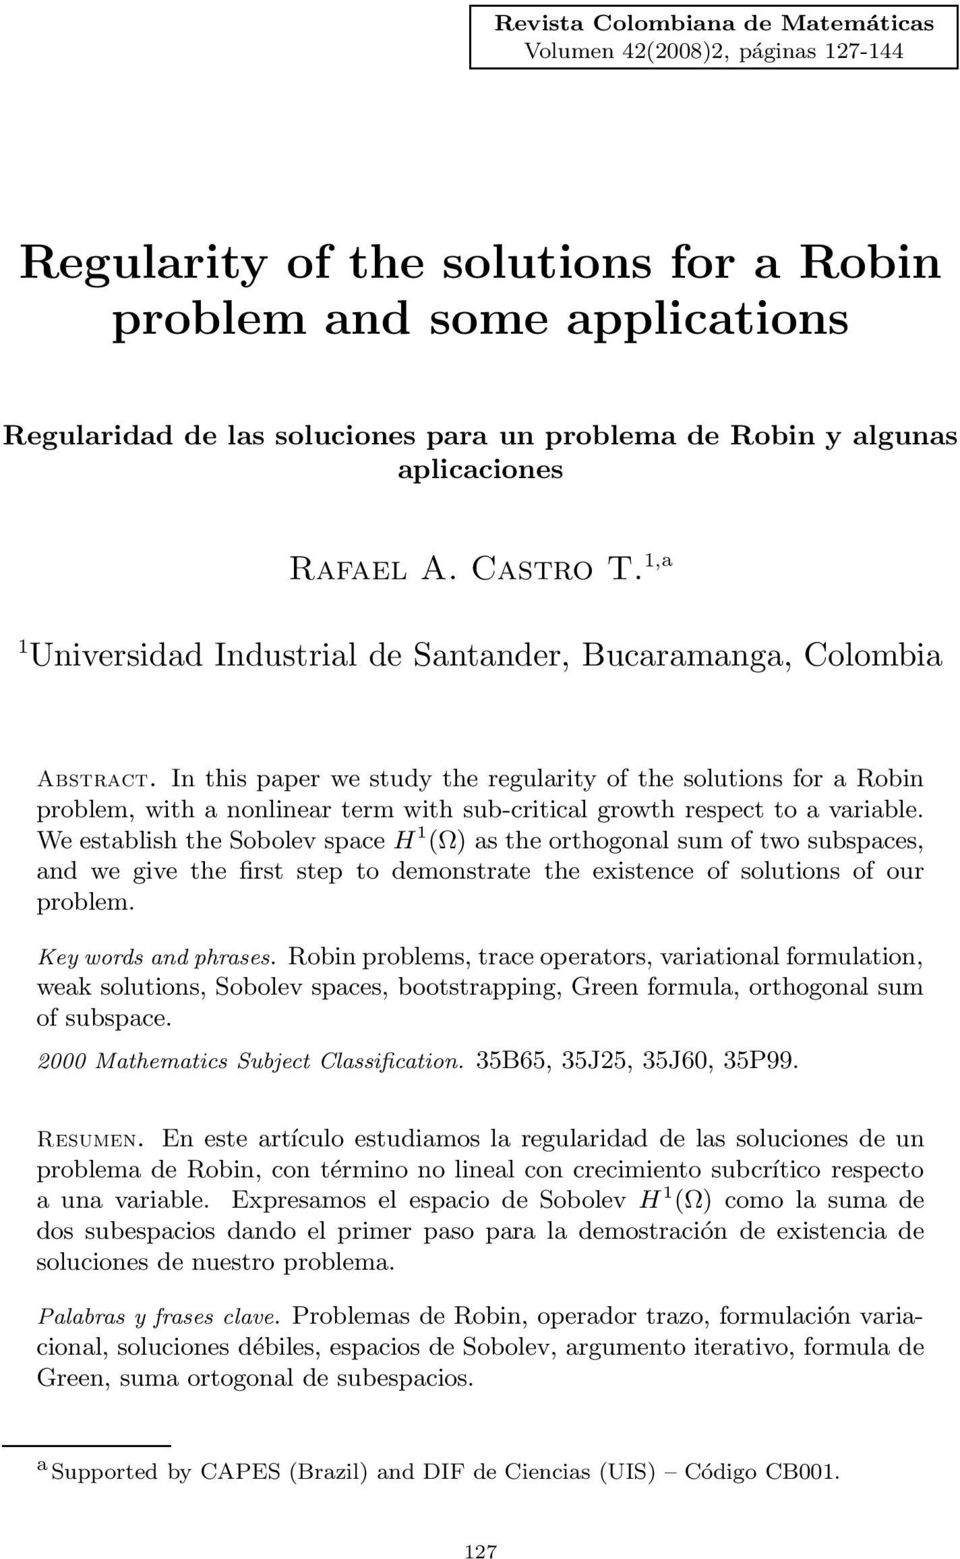 In this paper we study the regularity of the solutions for a Robin problem, with a nonlinear term with sub-critical growth respect to a variable.